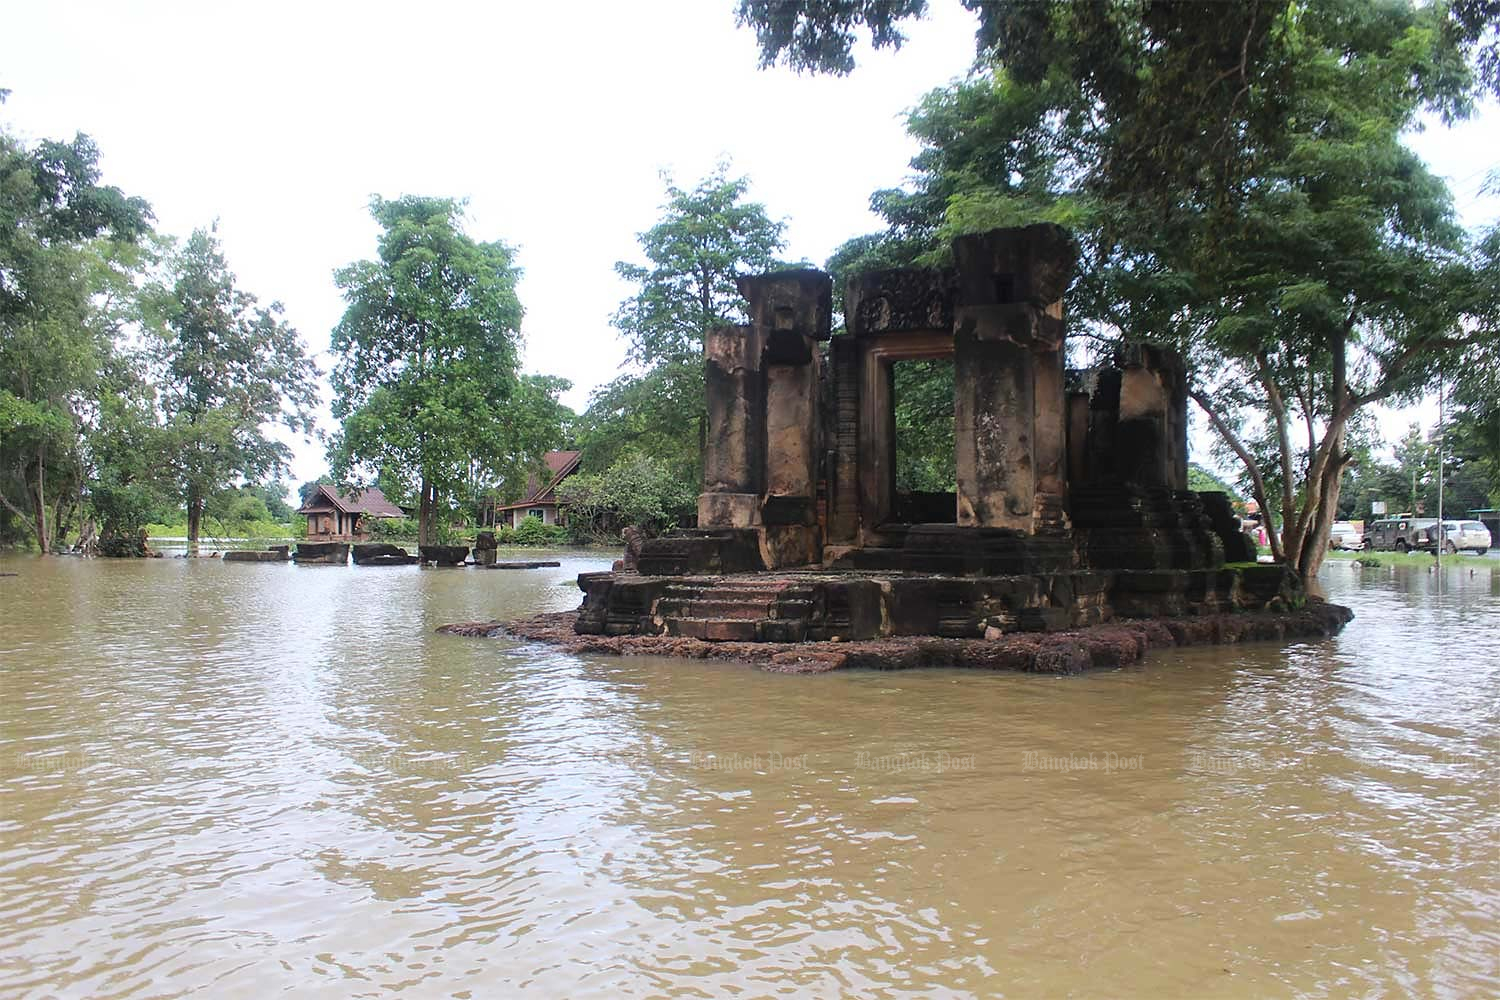 The 900-year-old Prang Phakho stone ruins in Chok Chai district and surrounding communities are under floodwater. (Photo by: Prasit Tangprasert)